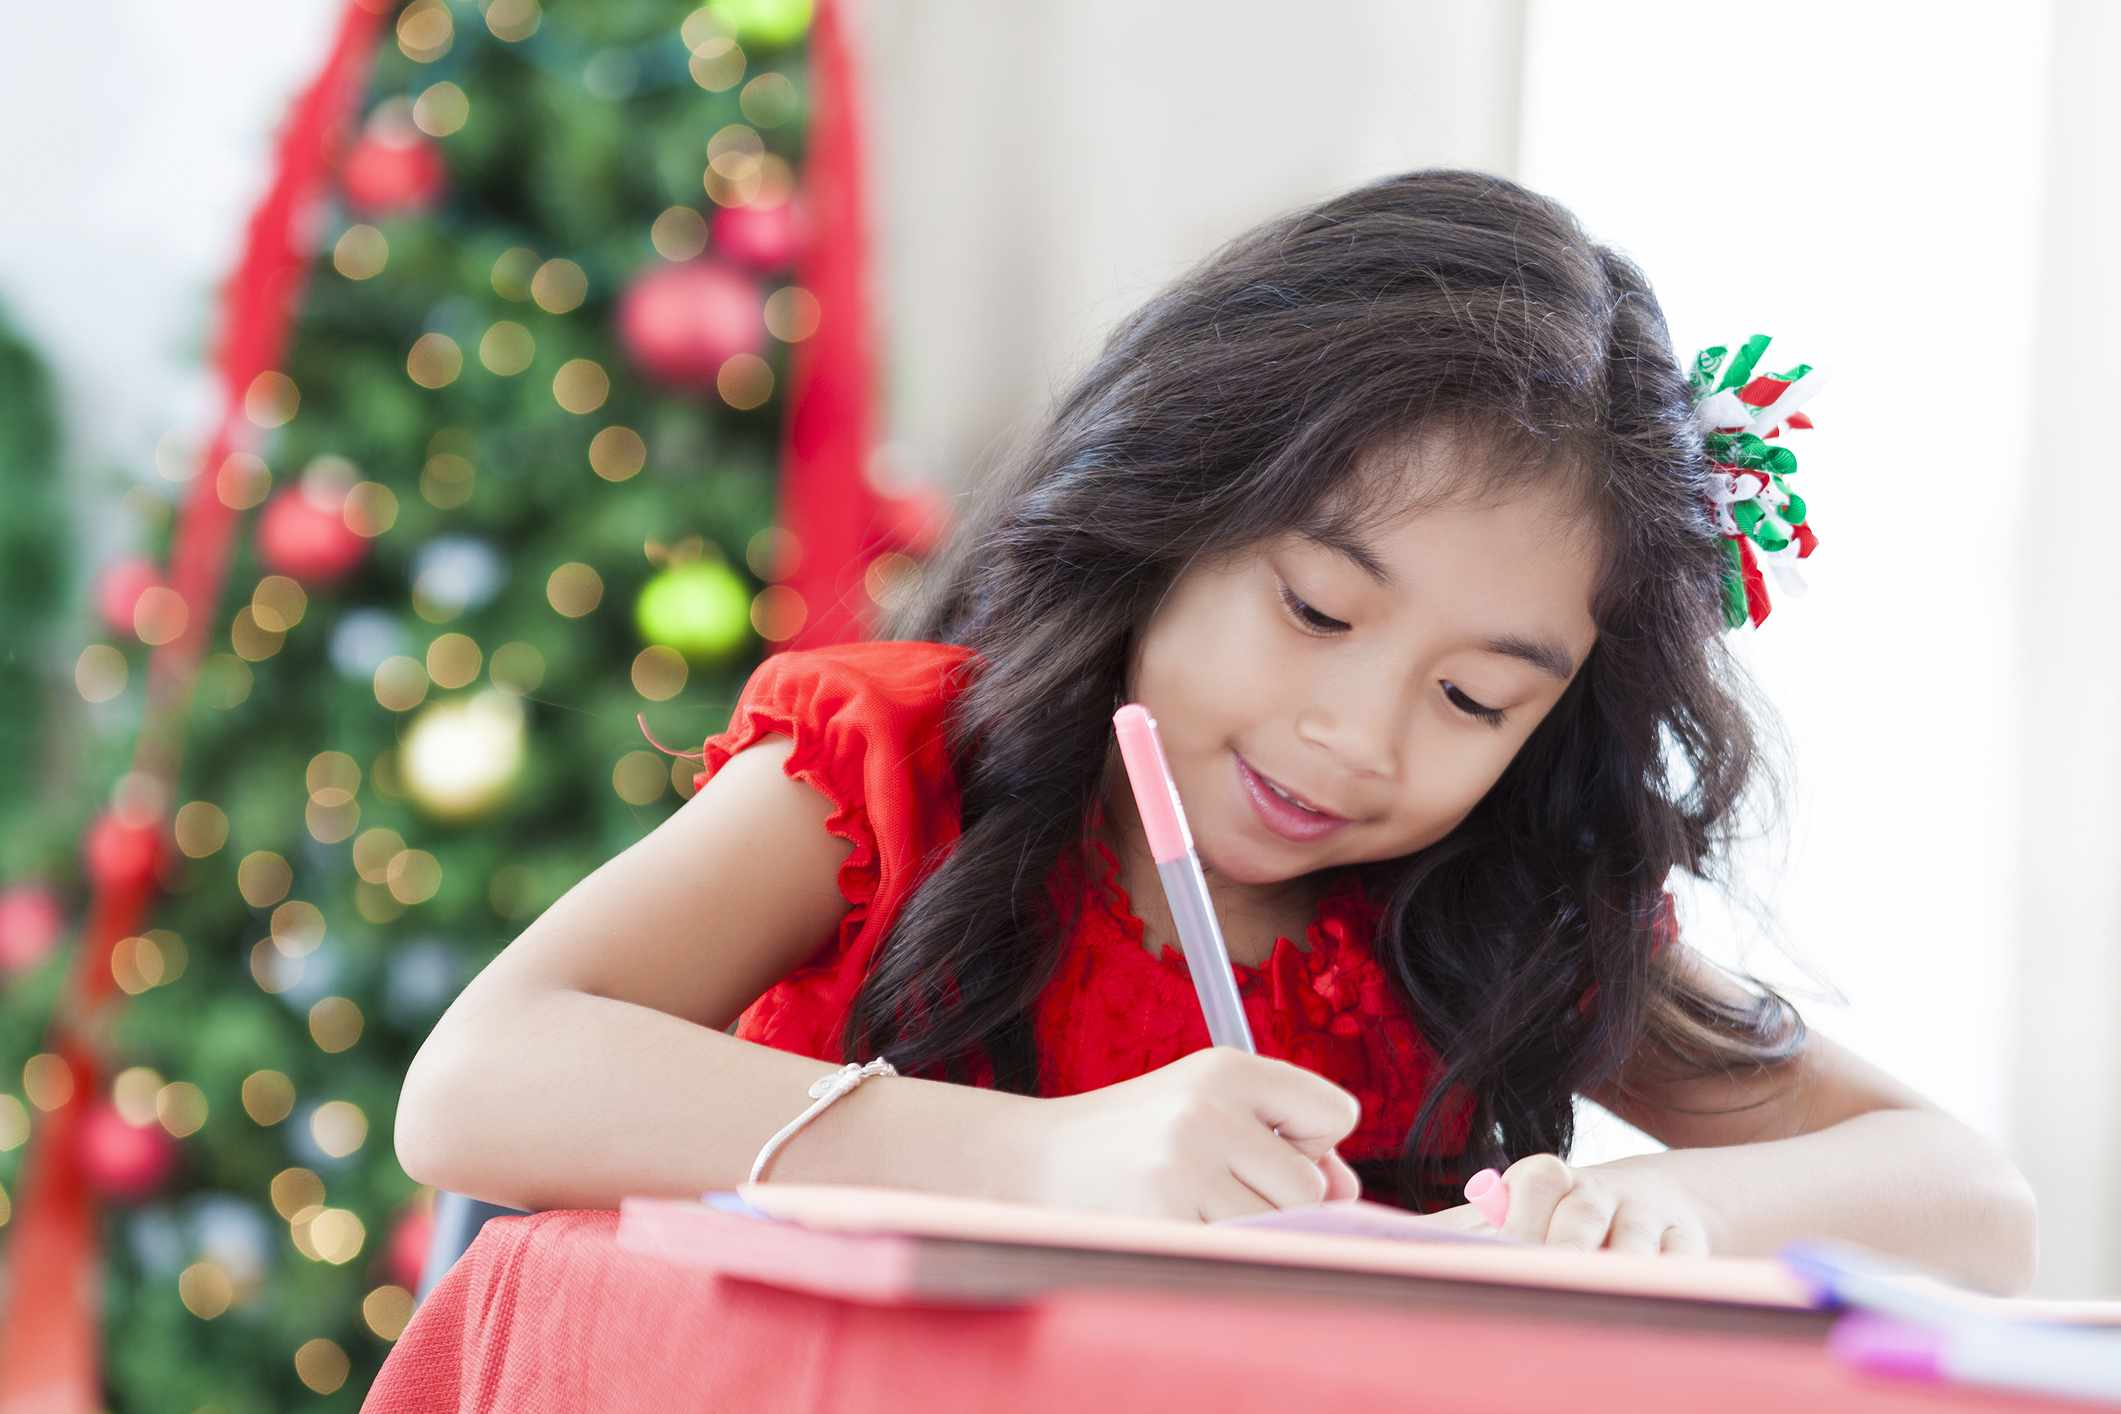 Girl concentrates while working on Christmas card